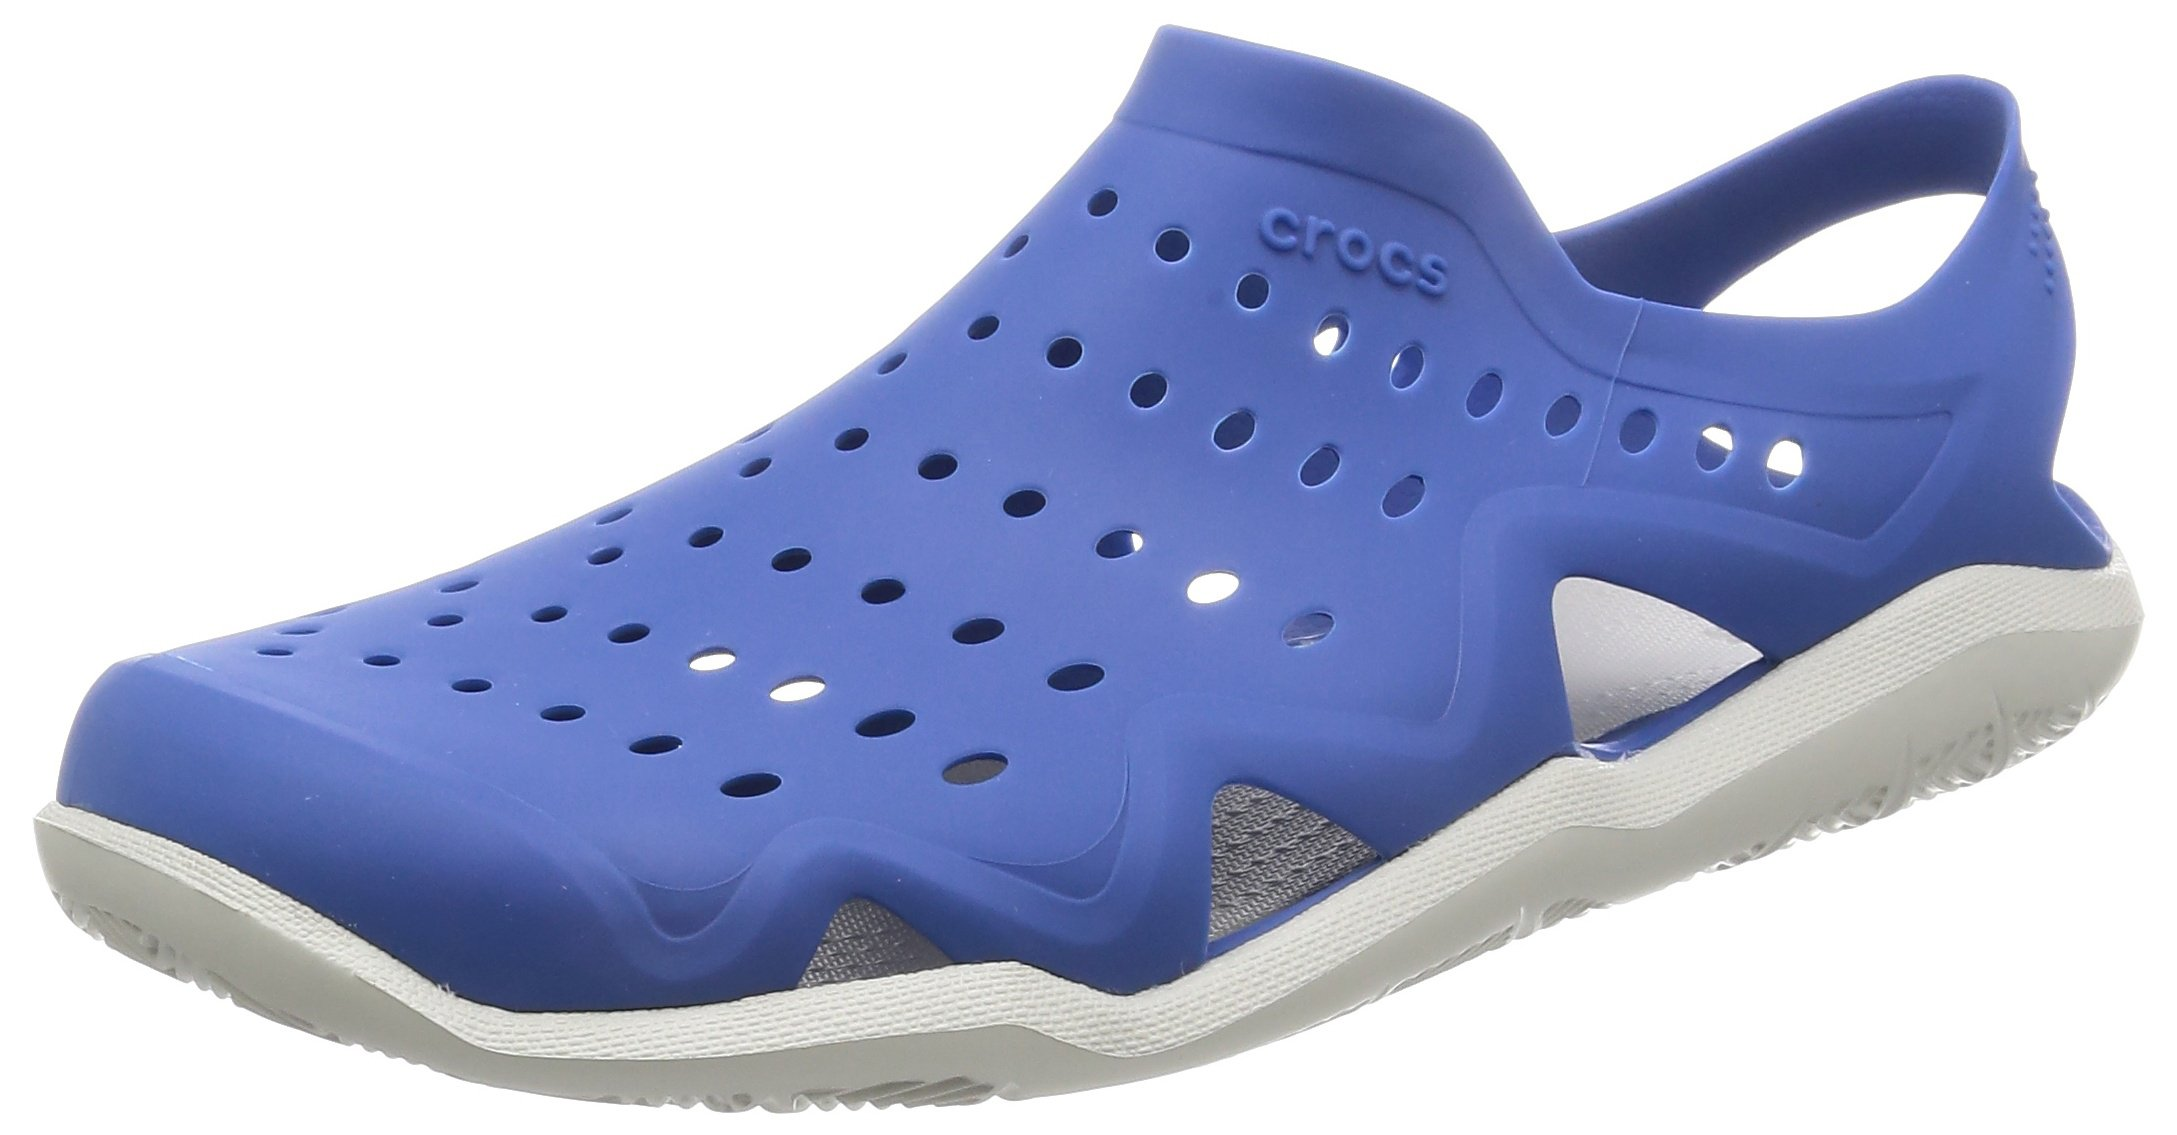 crocs Men's Swiftwater Wave M Flat,Blue Jean/Pearl White,4 M US by Crocs (Image #1)